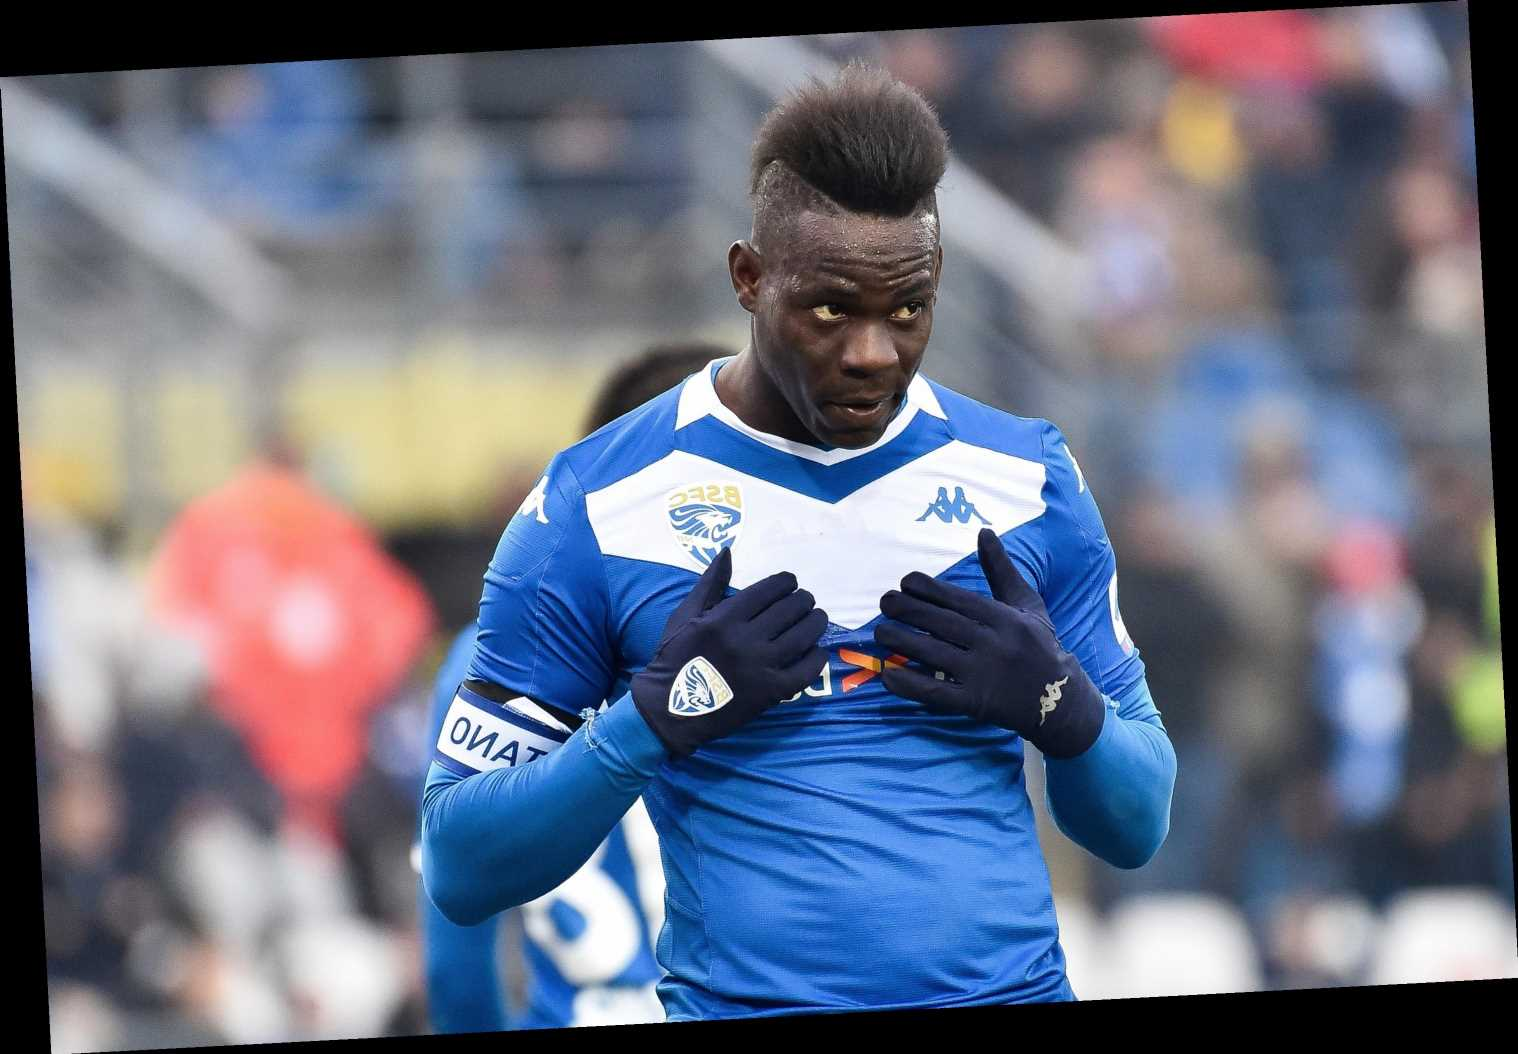 Mario Balotelli to be thrown career lifeline as Genoa target him in shock transfer after controversial exit from Brescia